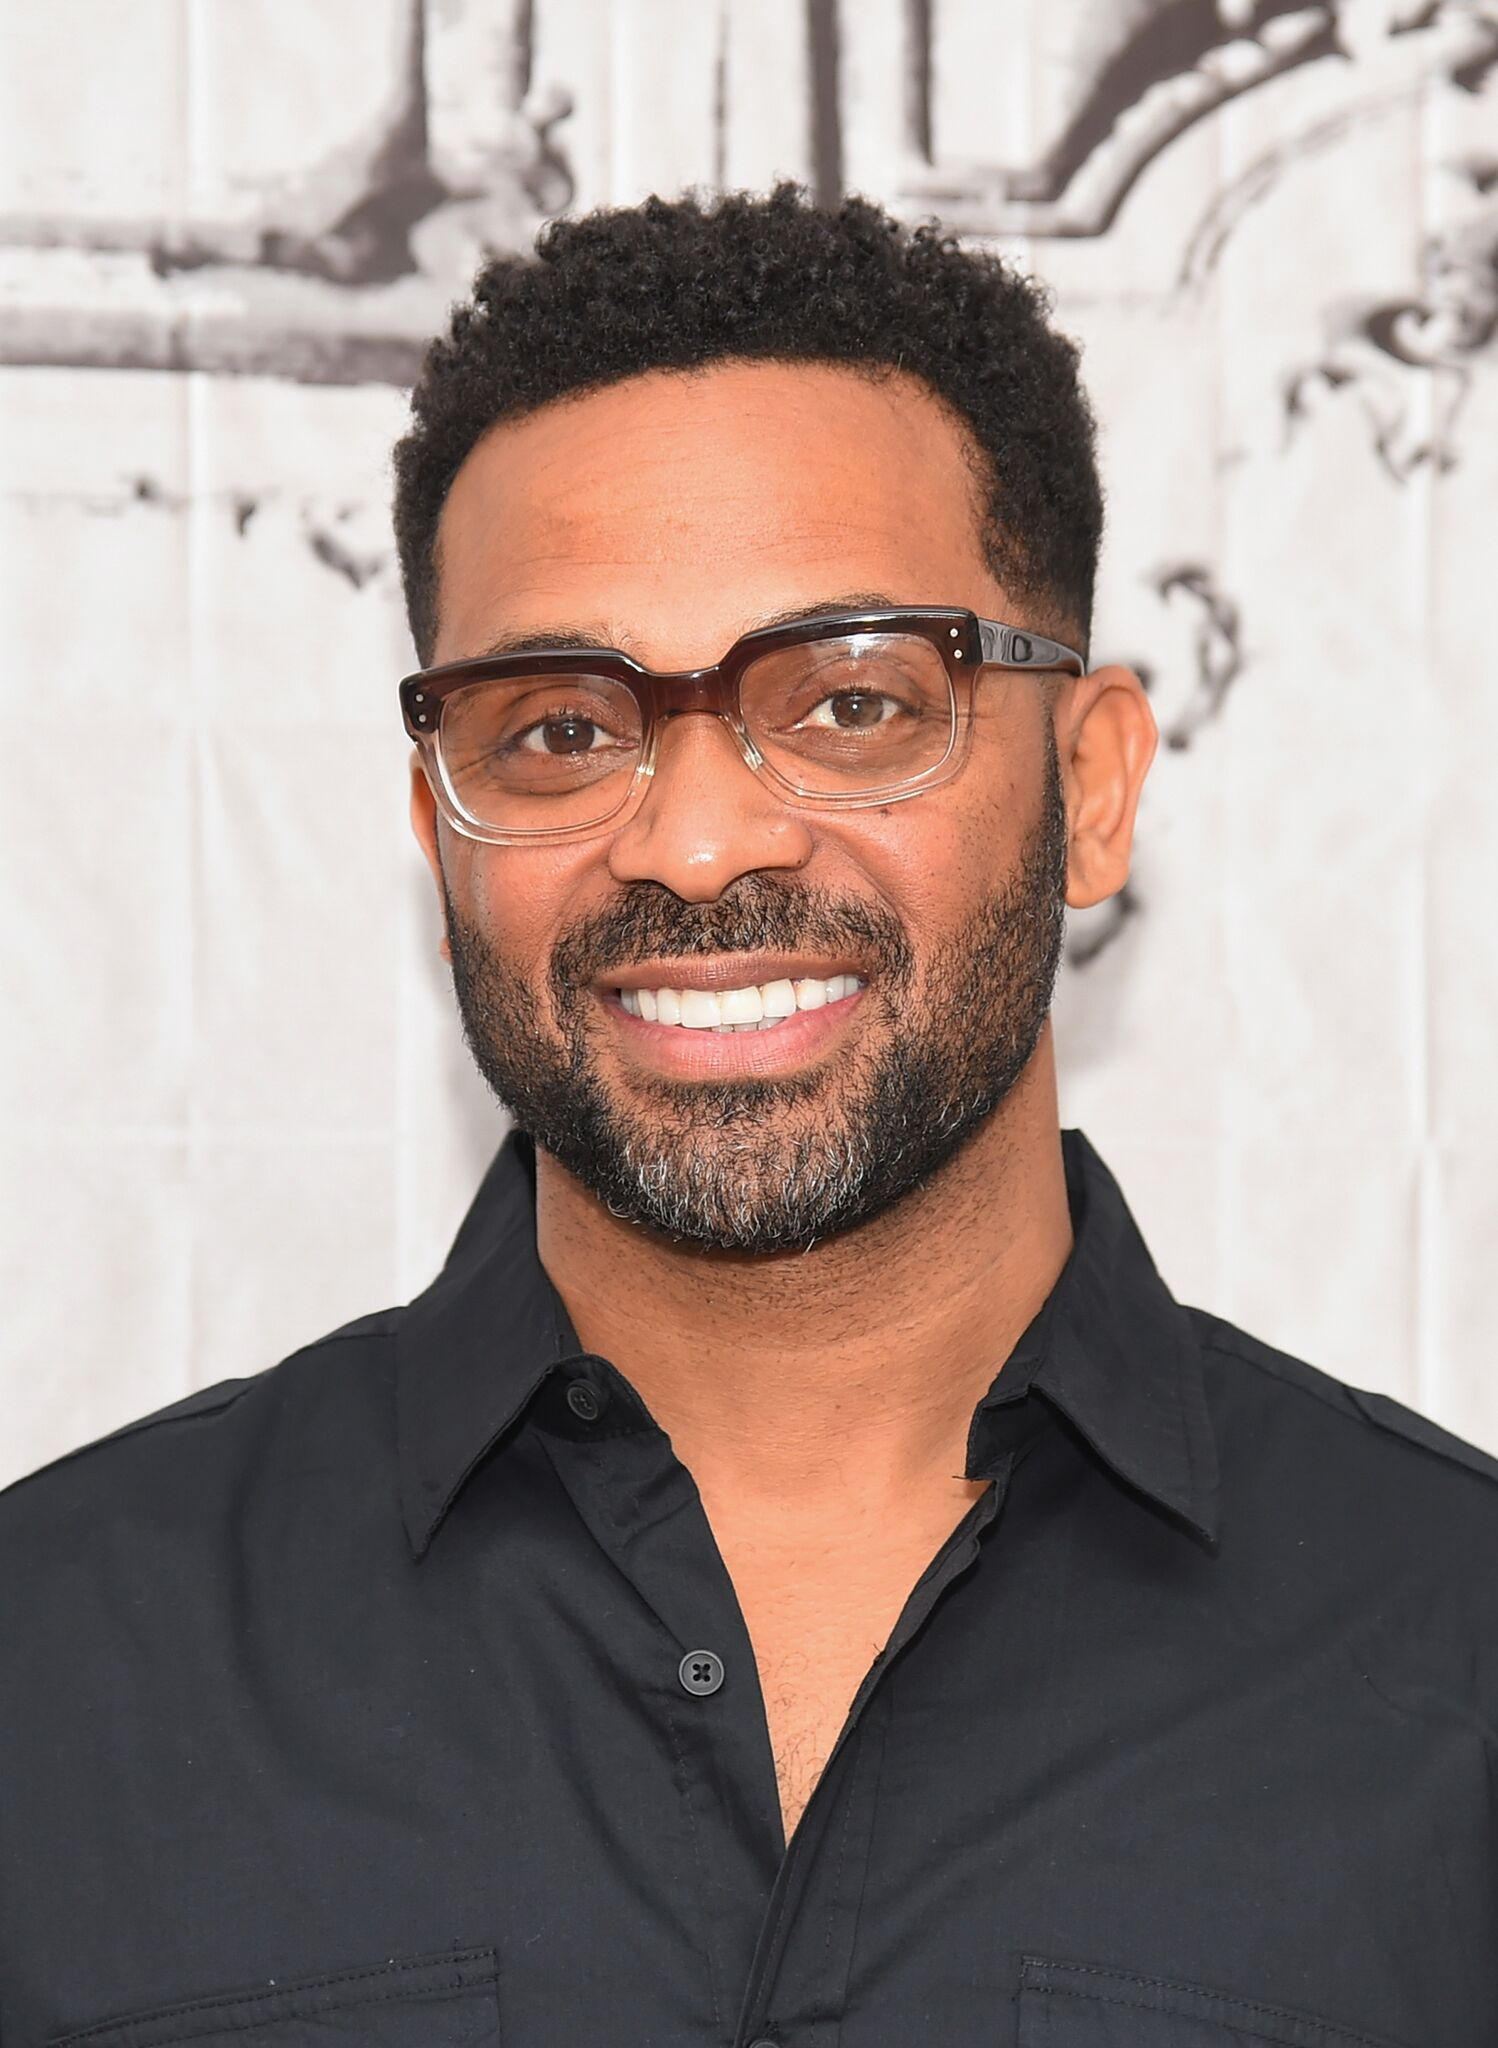 """Actor/comedian Mike Epps attends the AOL BUILD Speaker Series Presents: """"Survivor's Remorse"""" at AOL Studios in New York on July 29, 2015 